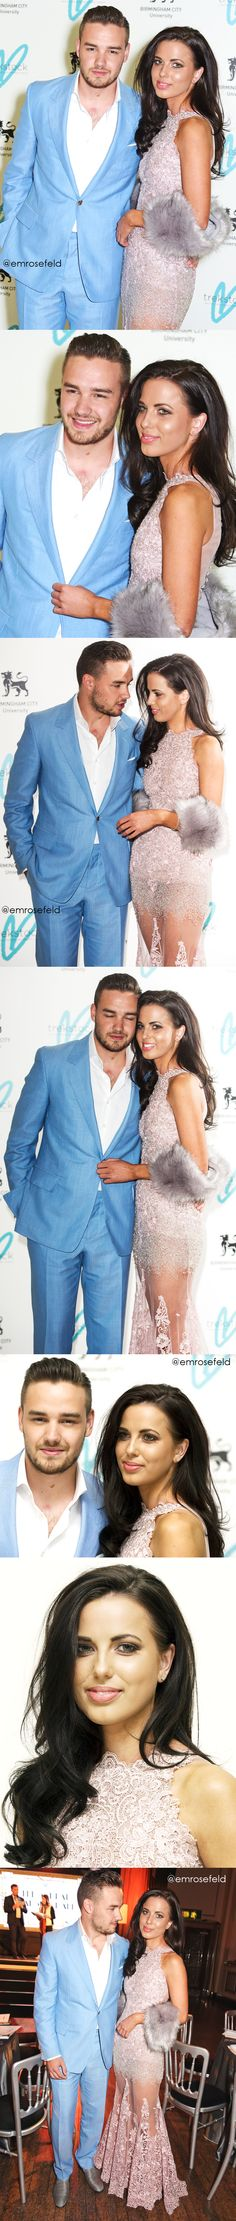 Liam Payne + Sophia Smith | at The Great Gatsby Ball for Trekstock 4.16.15 |